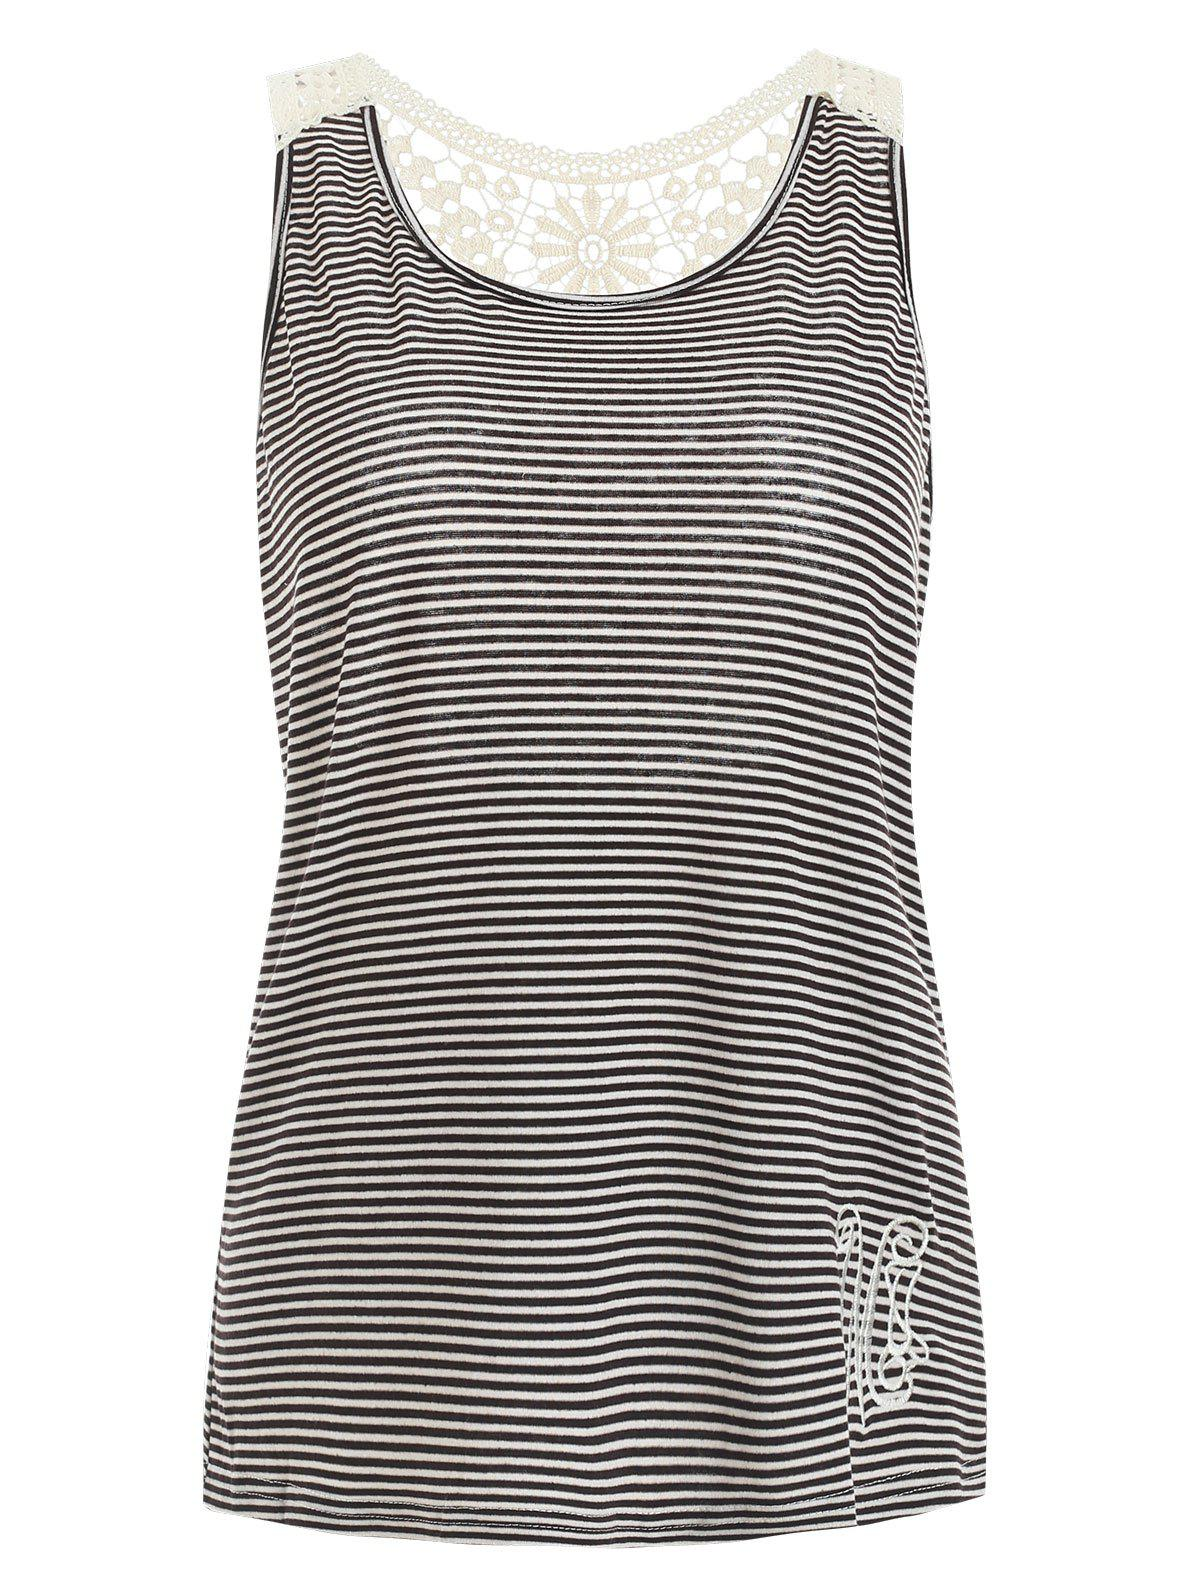 Stylish Scoop Neck Lace Splicing Striped Embroidery Women's Tank Top - GRAY XL